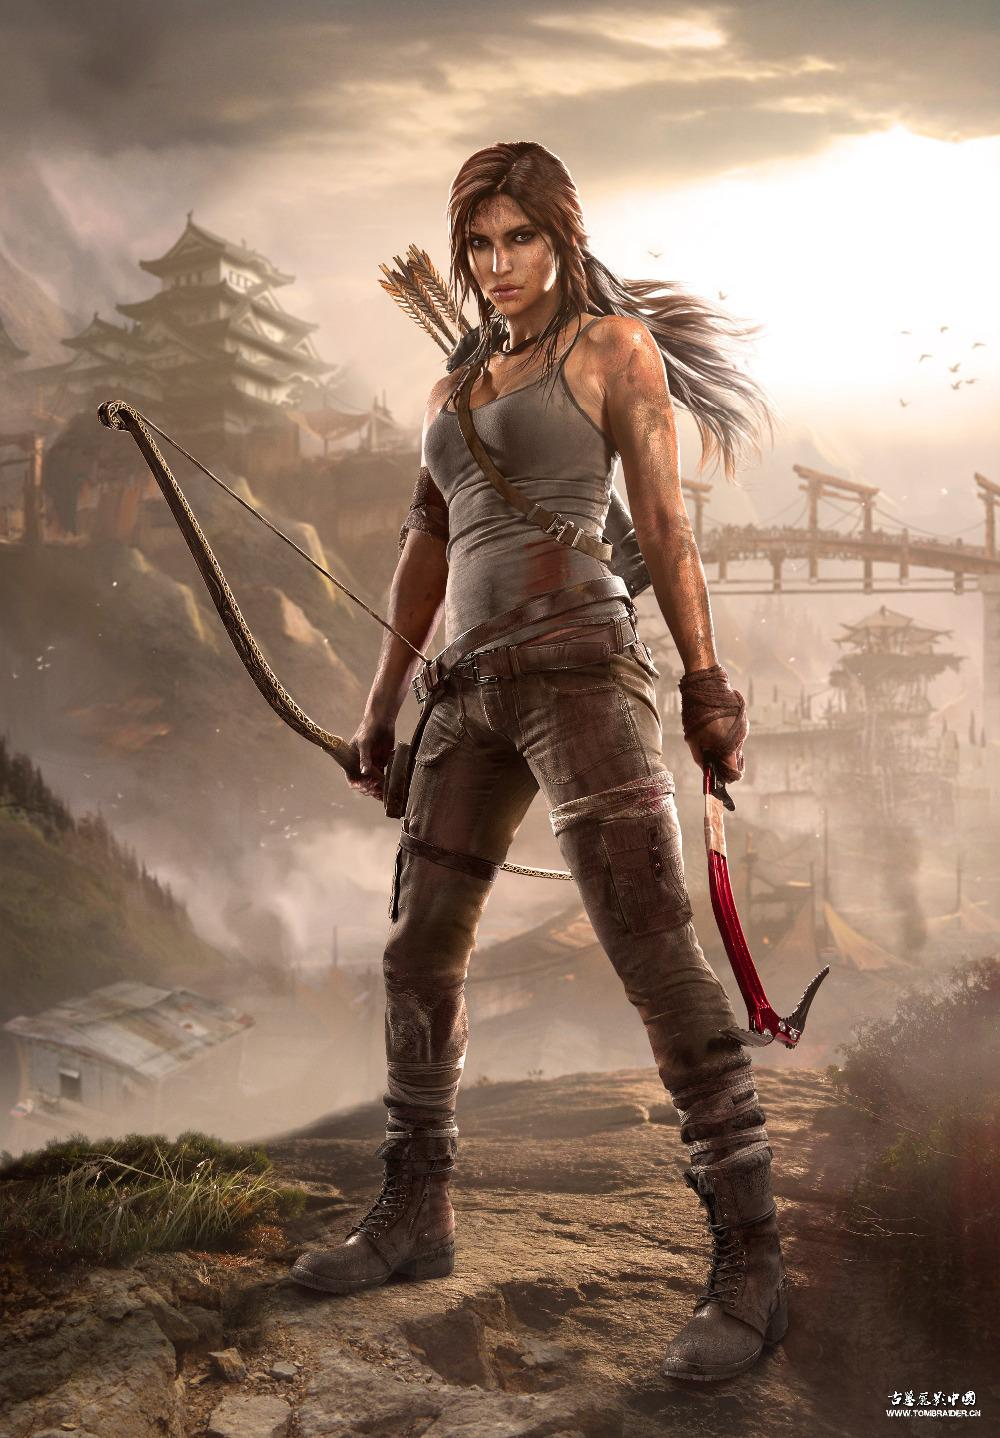 P0416 TOMB RAIDER POSTER LARA STANDING WITH A BOW GAME Poster china supplier 24X33(China (Mainland))